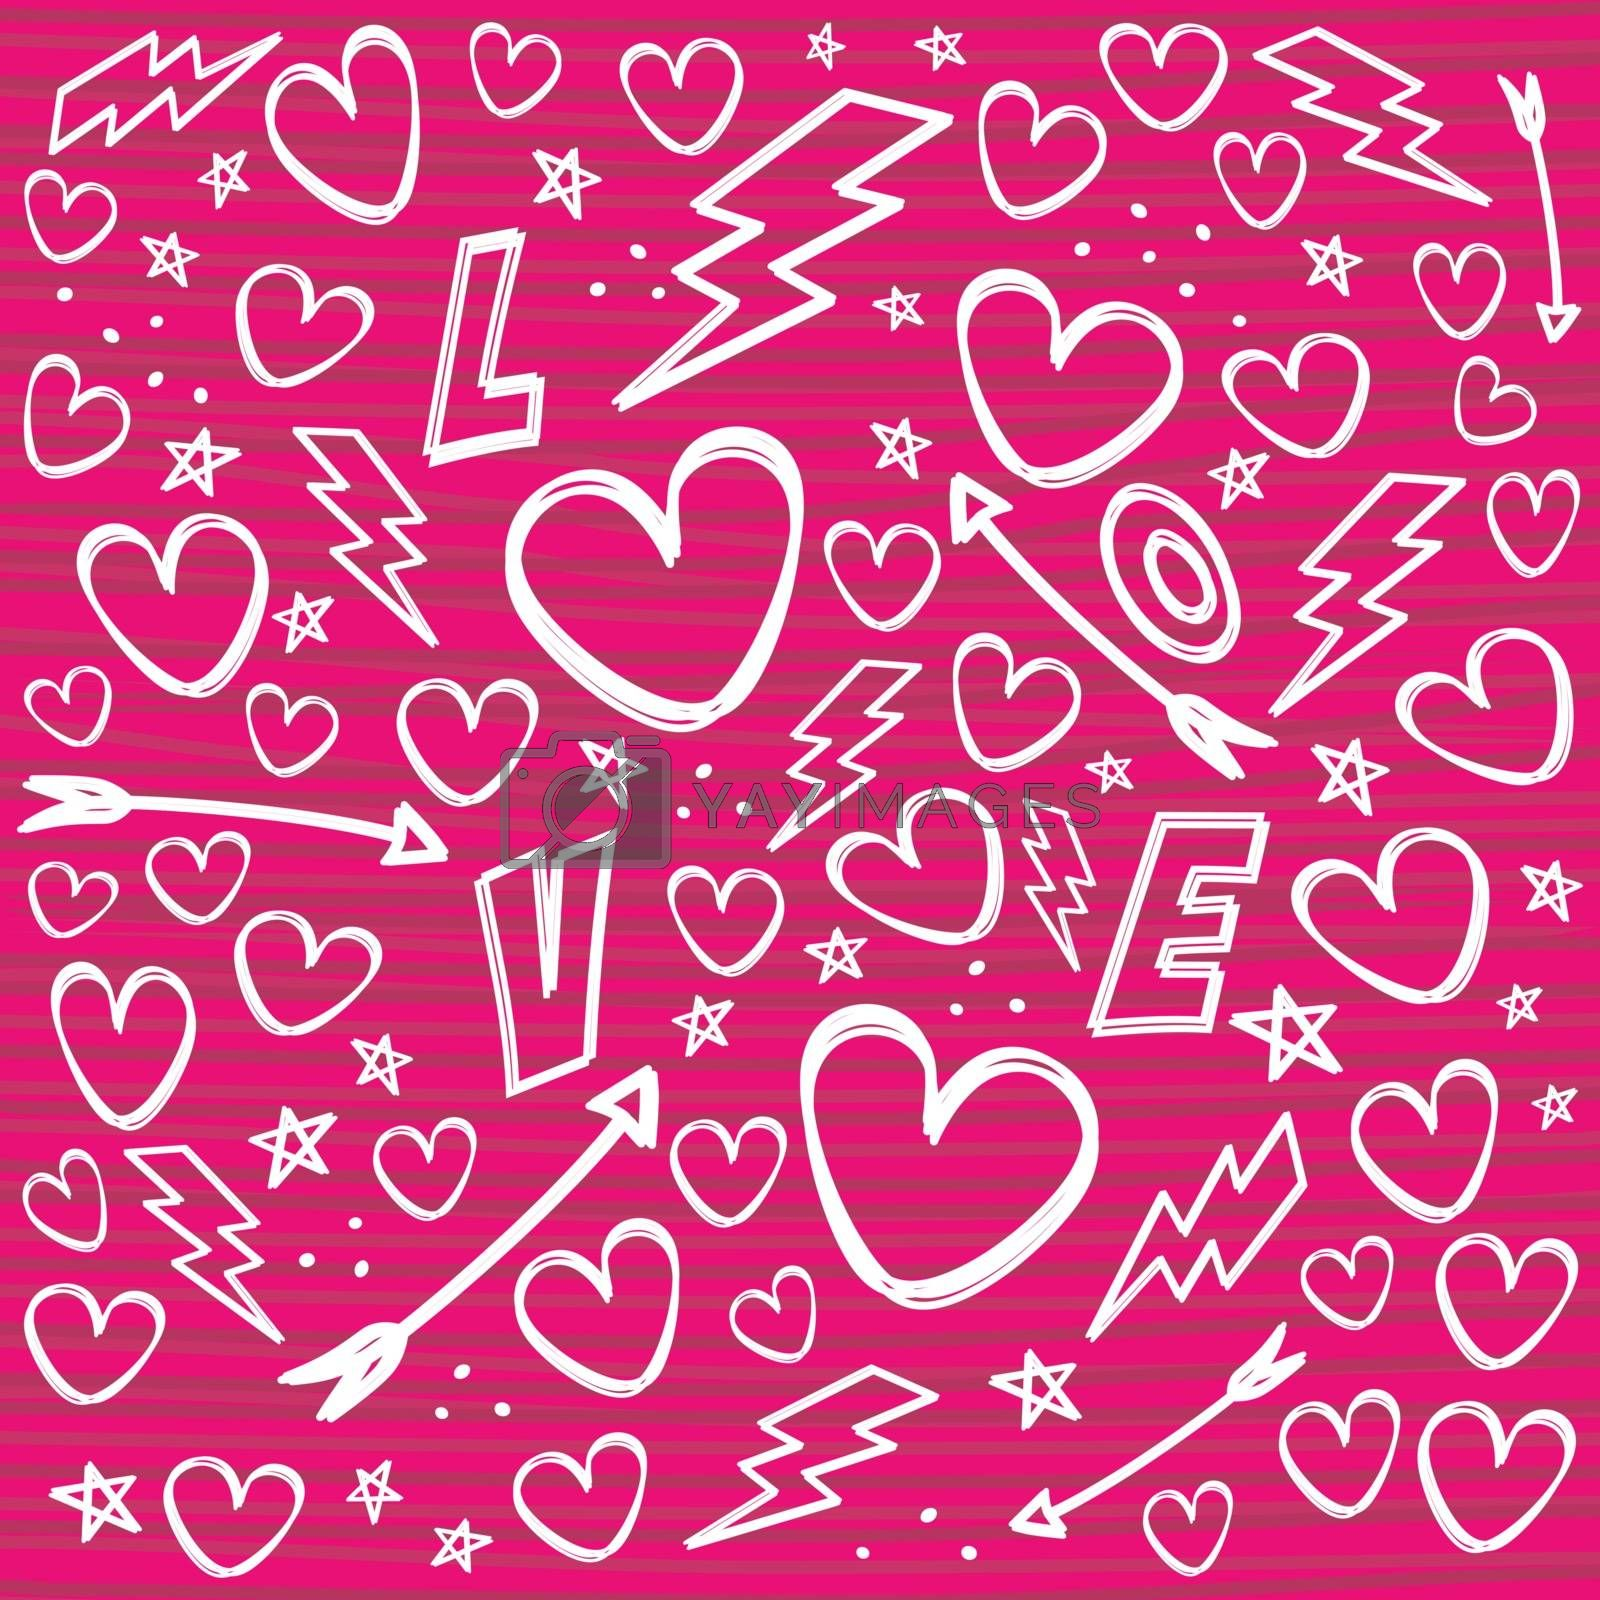 romance theme vanlentines day by vector1st